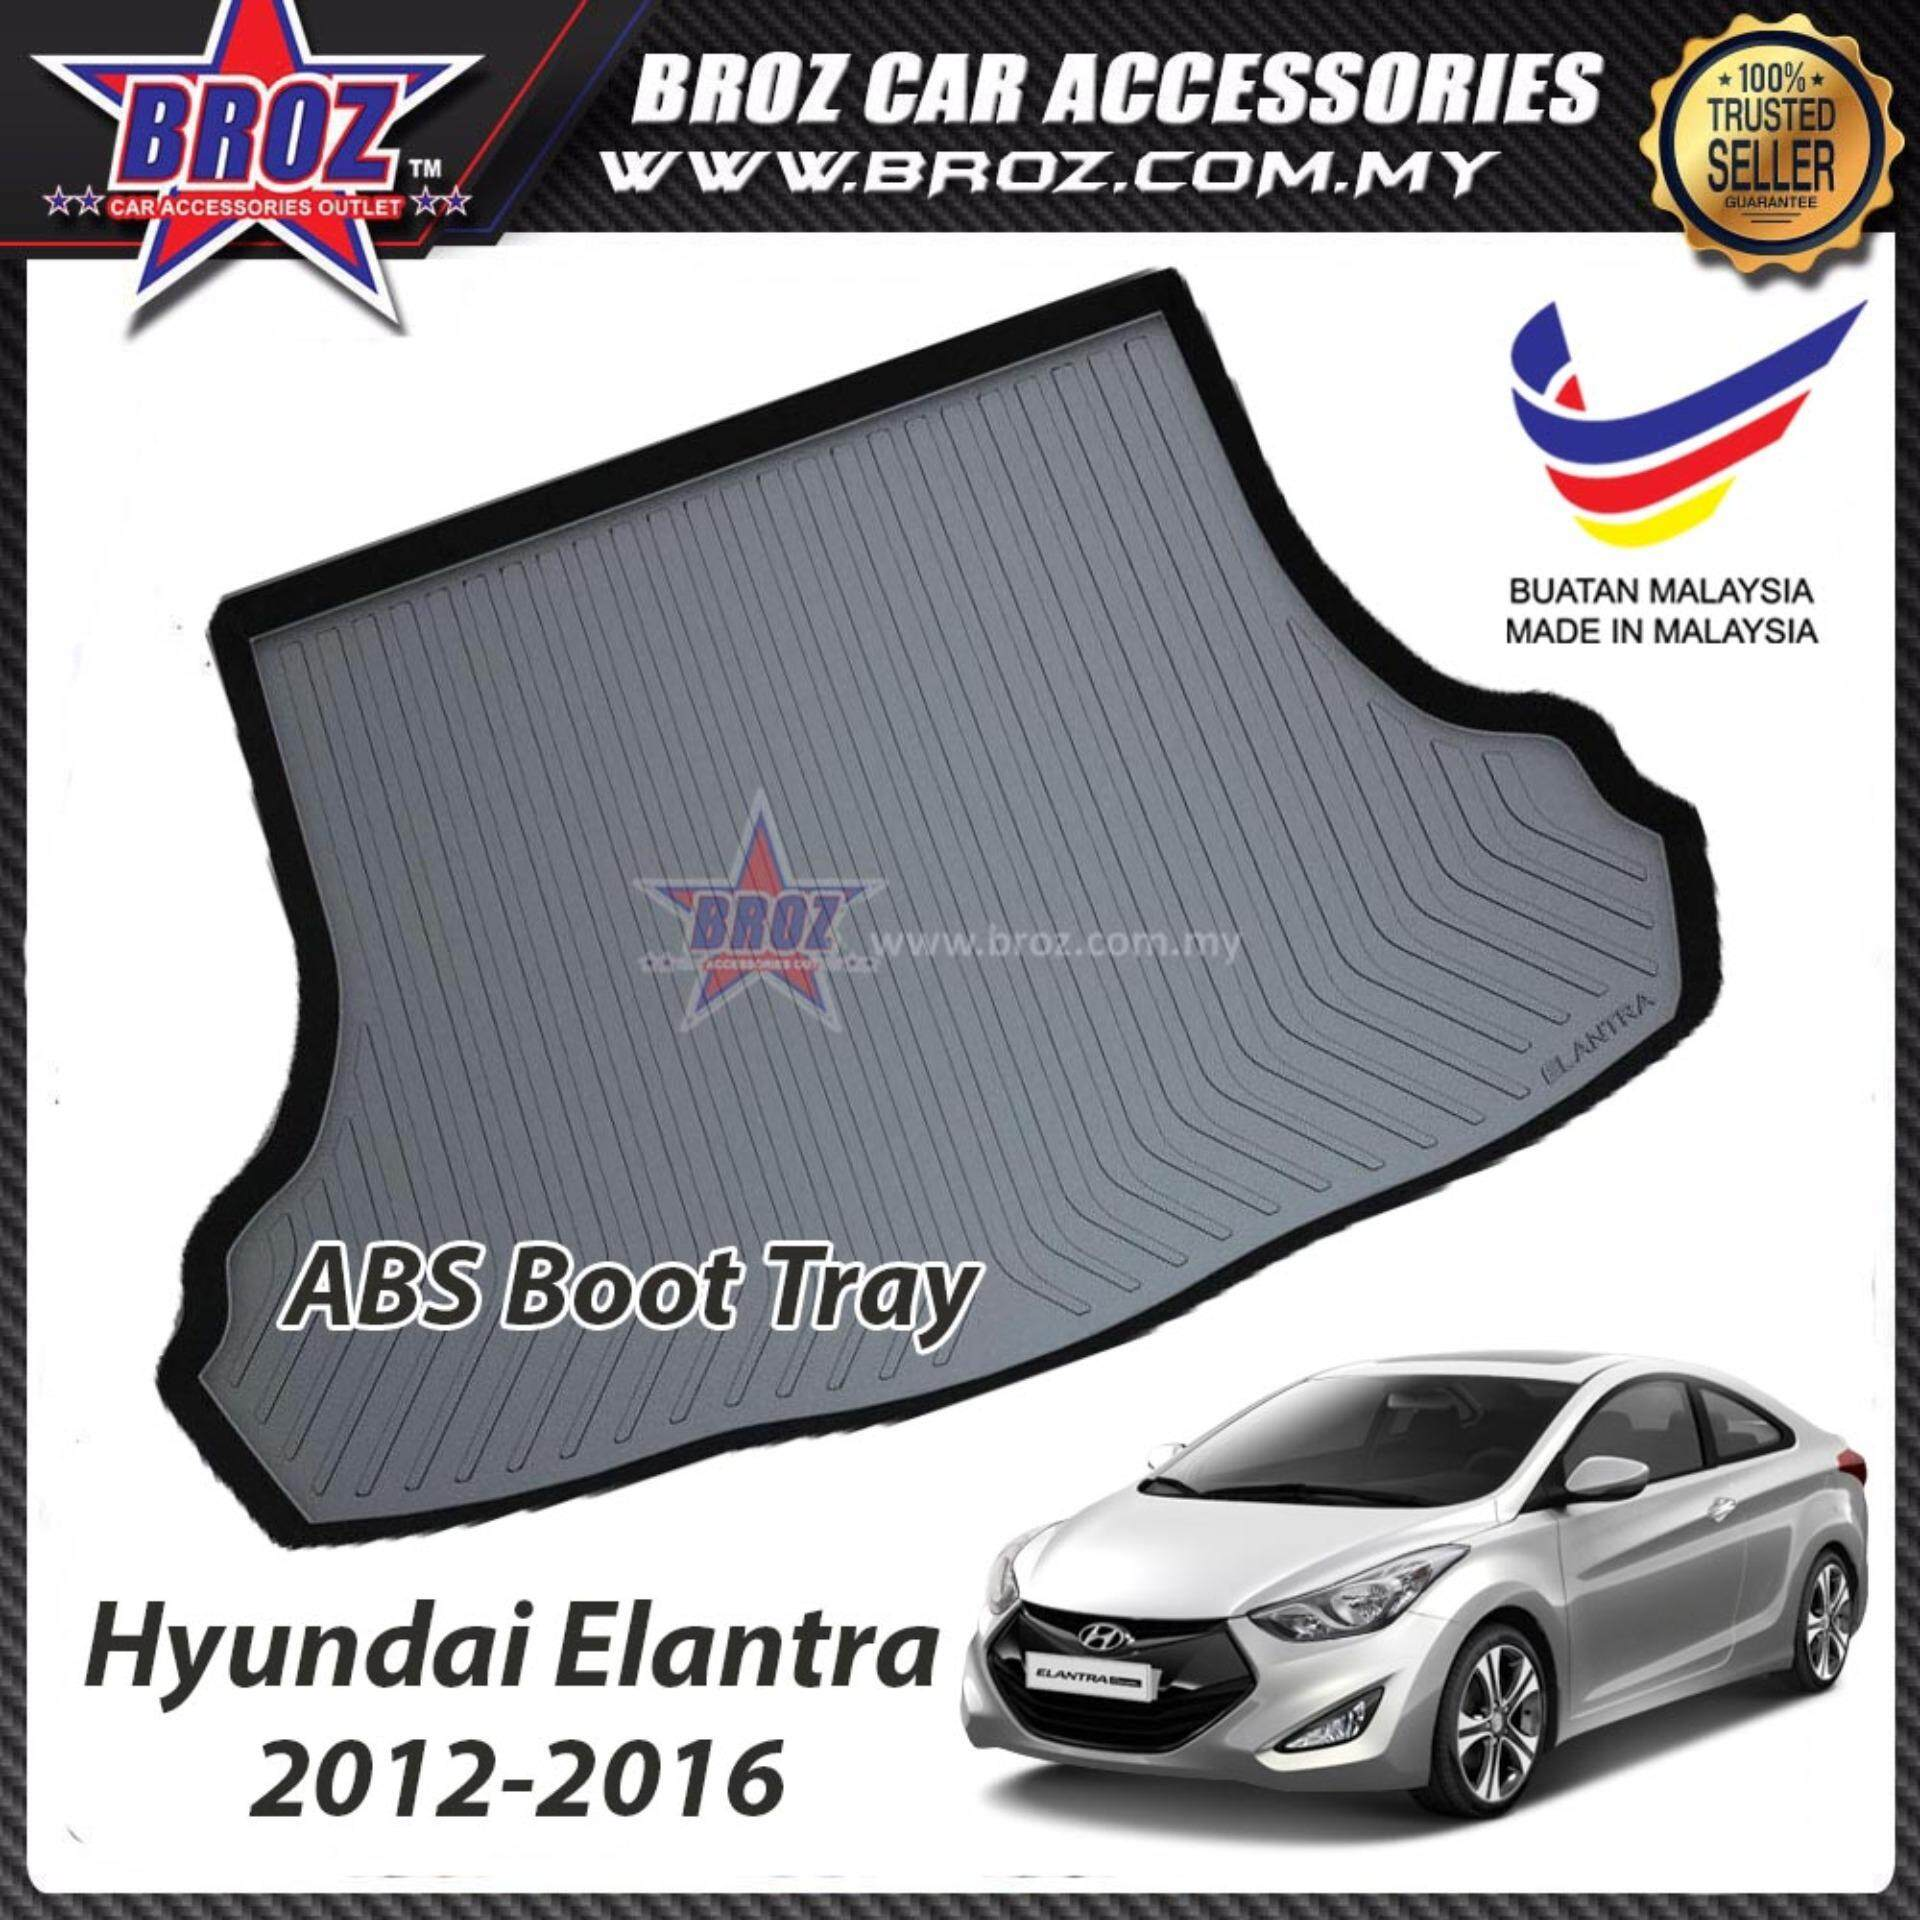 Hyundai Elantra 2012-2016 ABS Car Rear Boot Trunk Tray